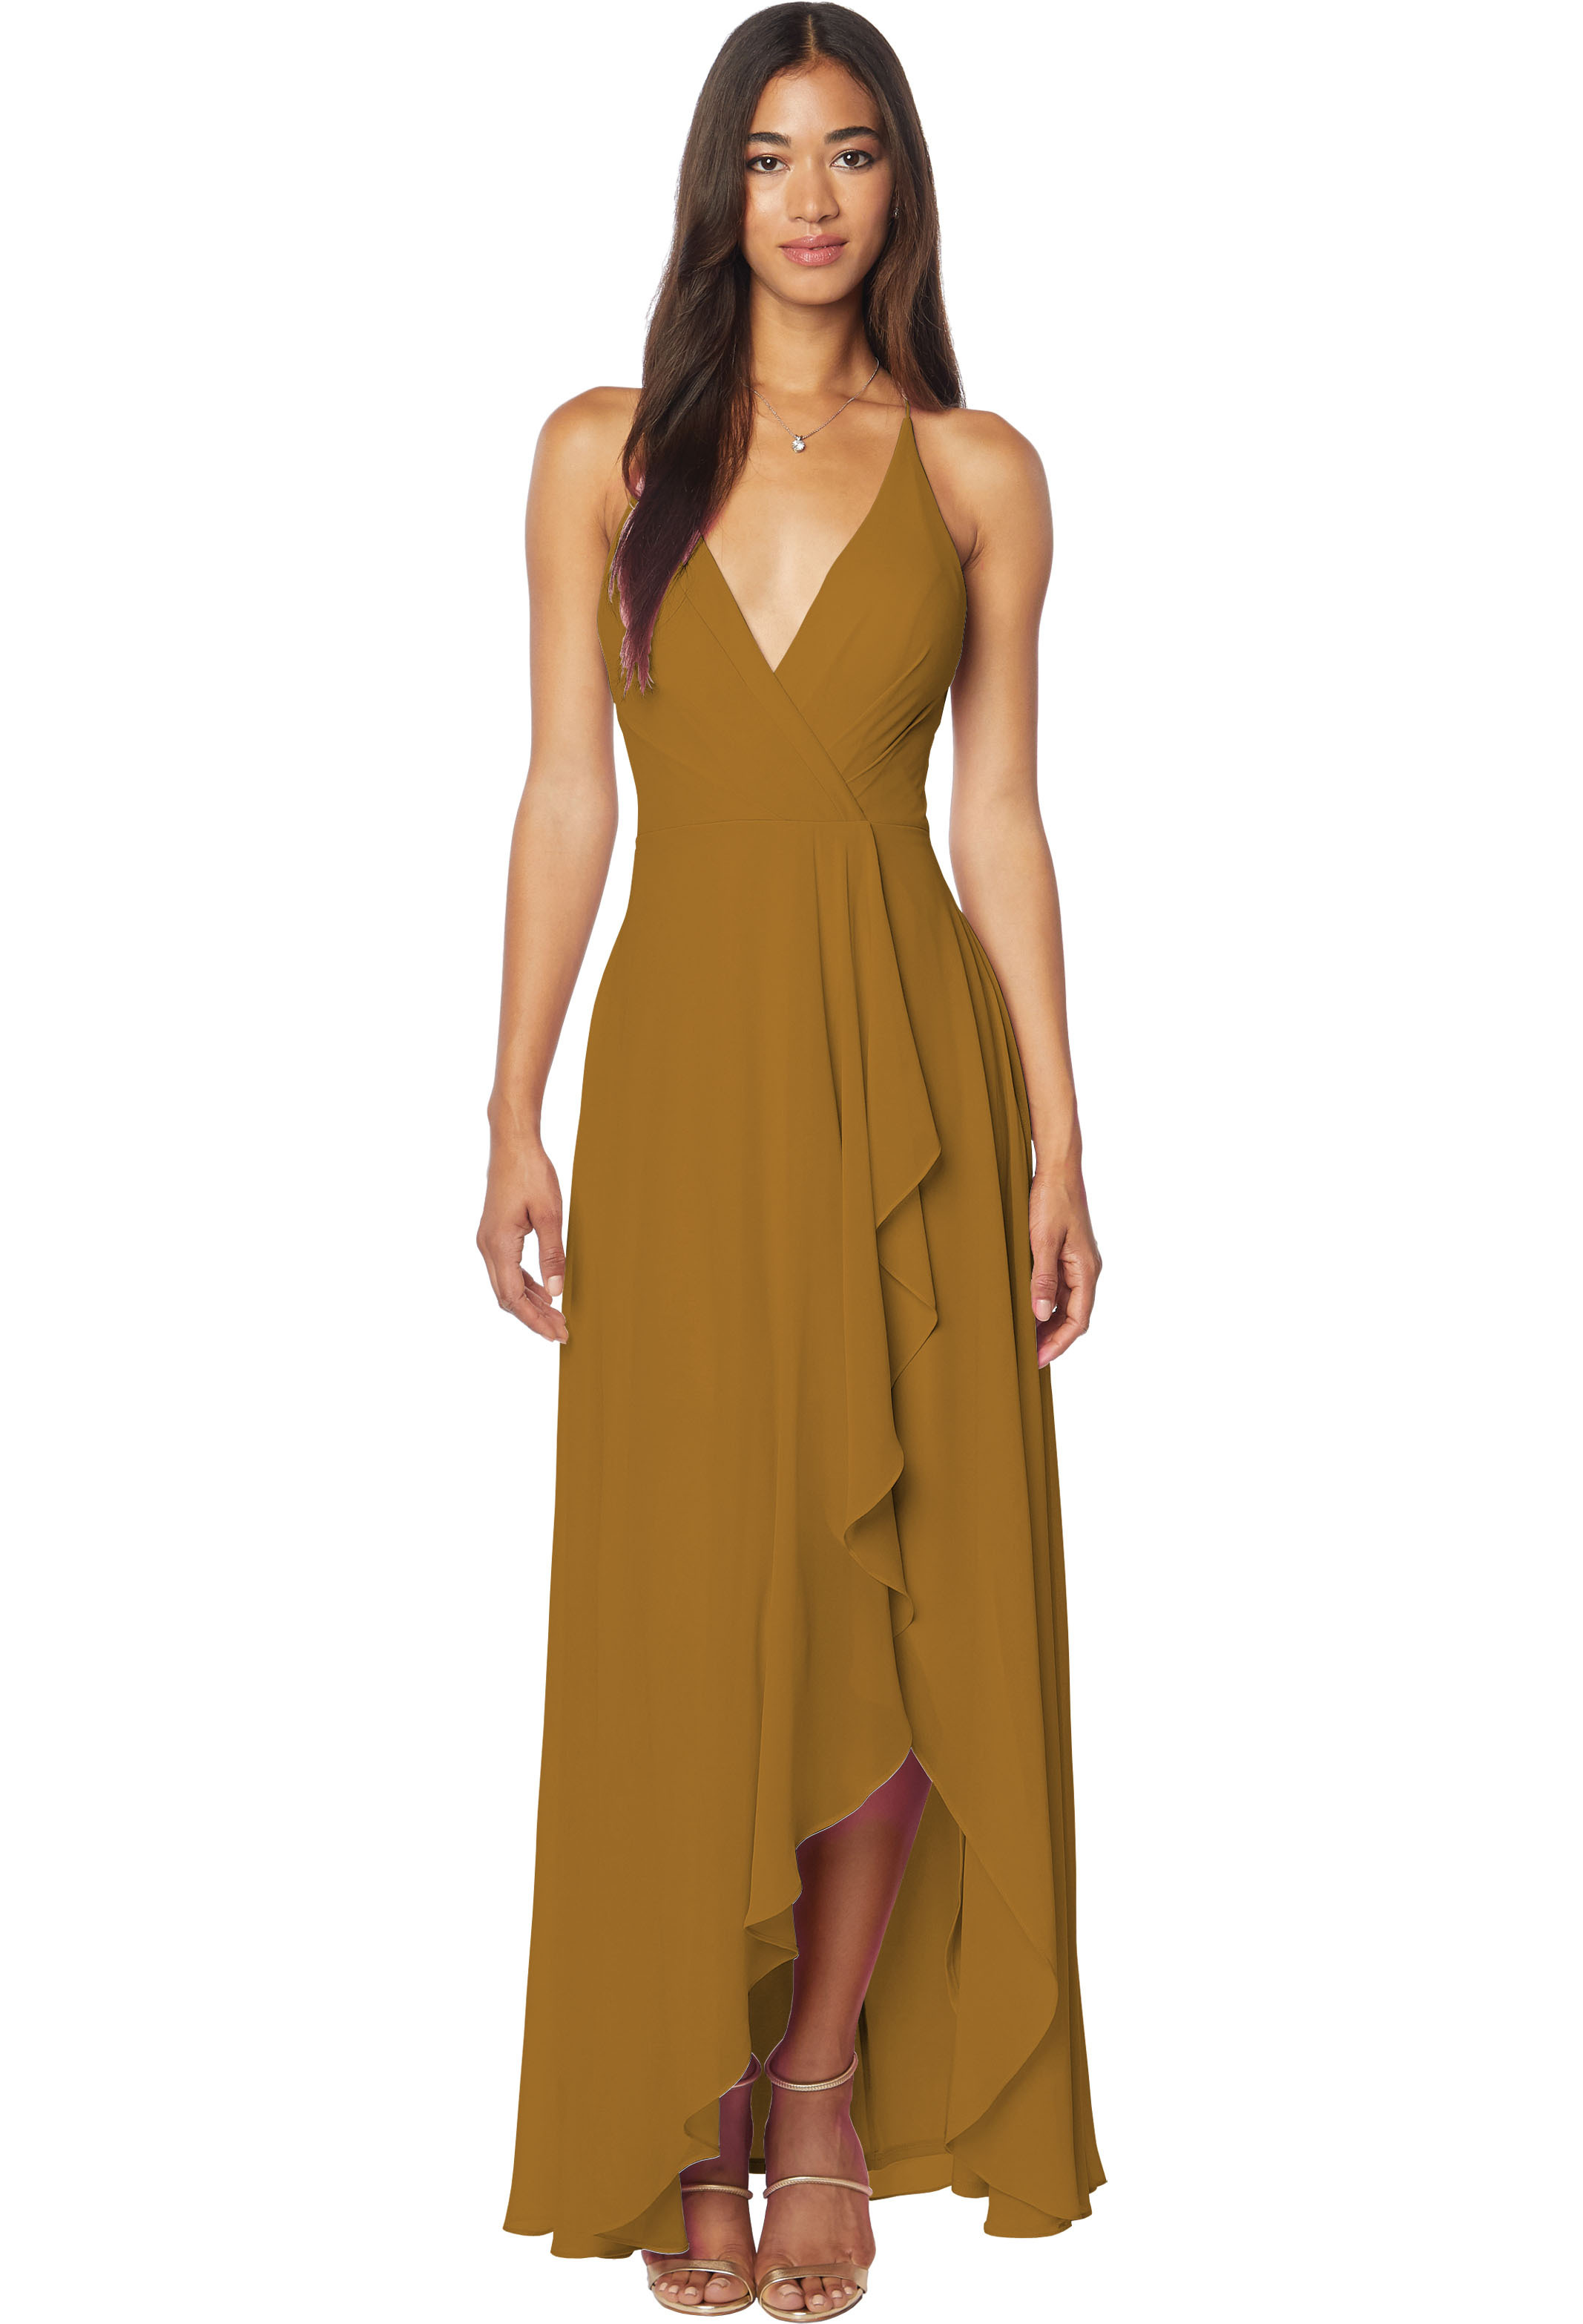 Bill Levkoff GOLD Chiffon V-neck A-line gown, $198.00 Front